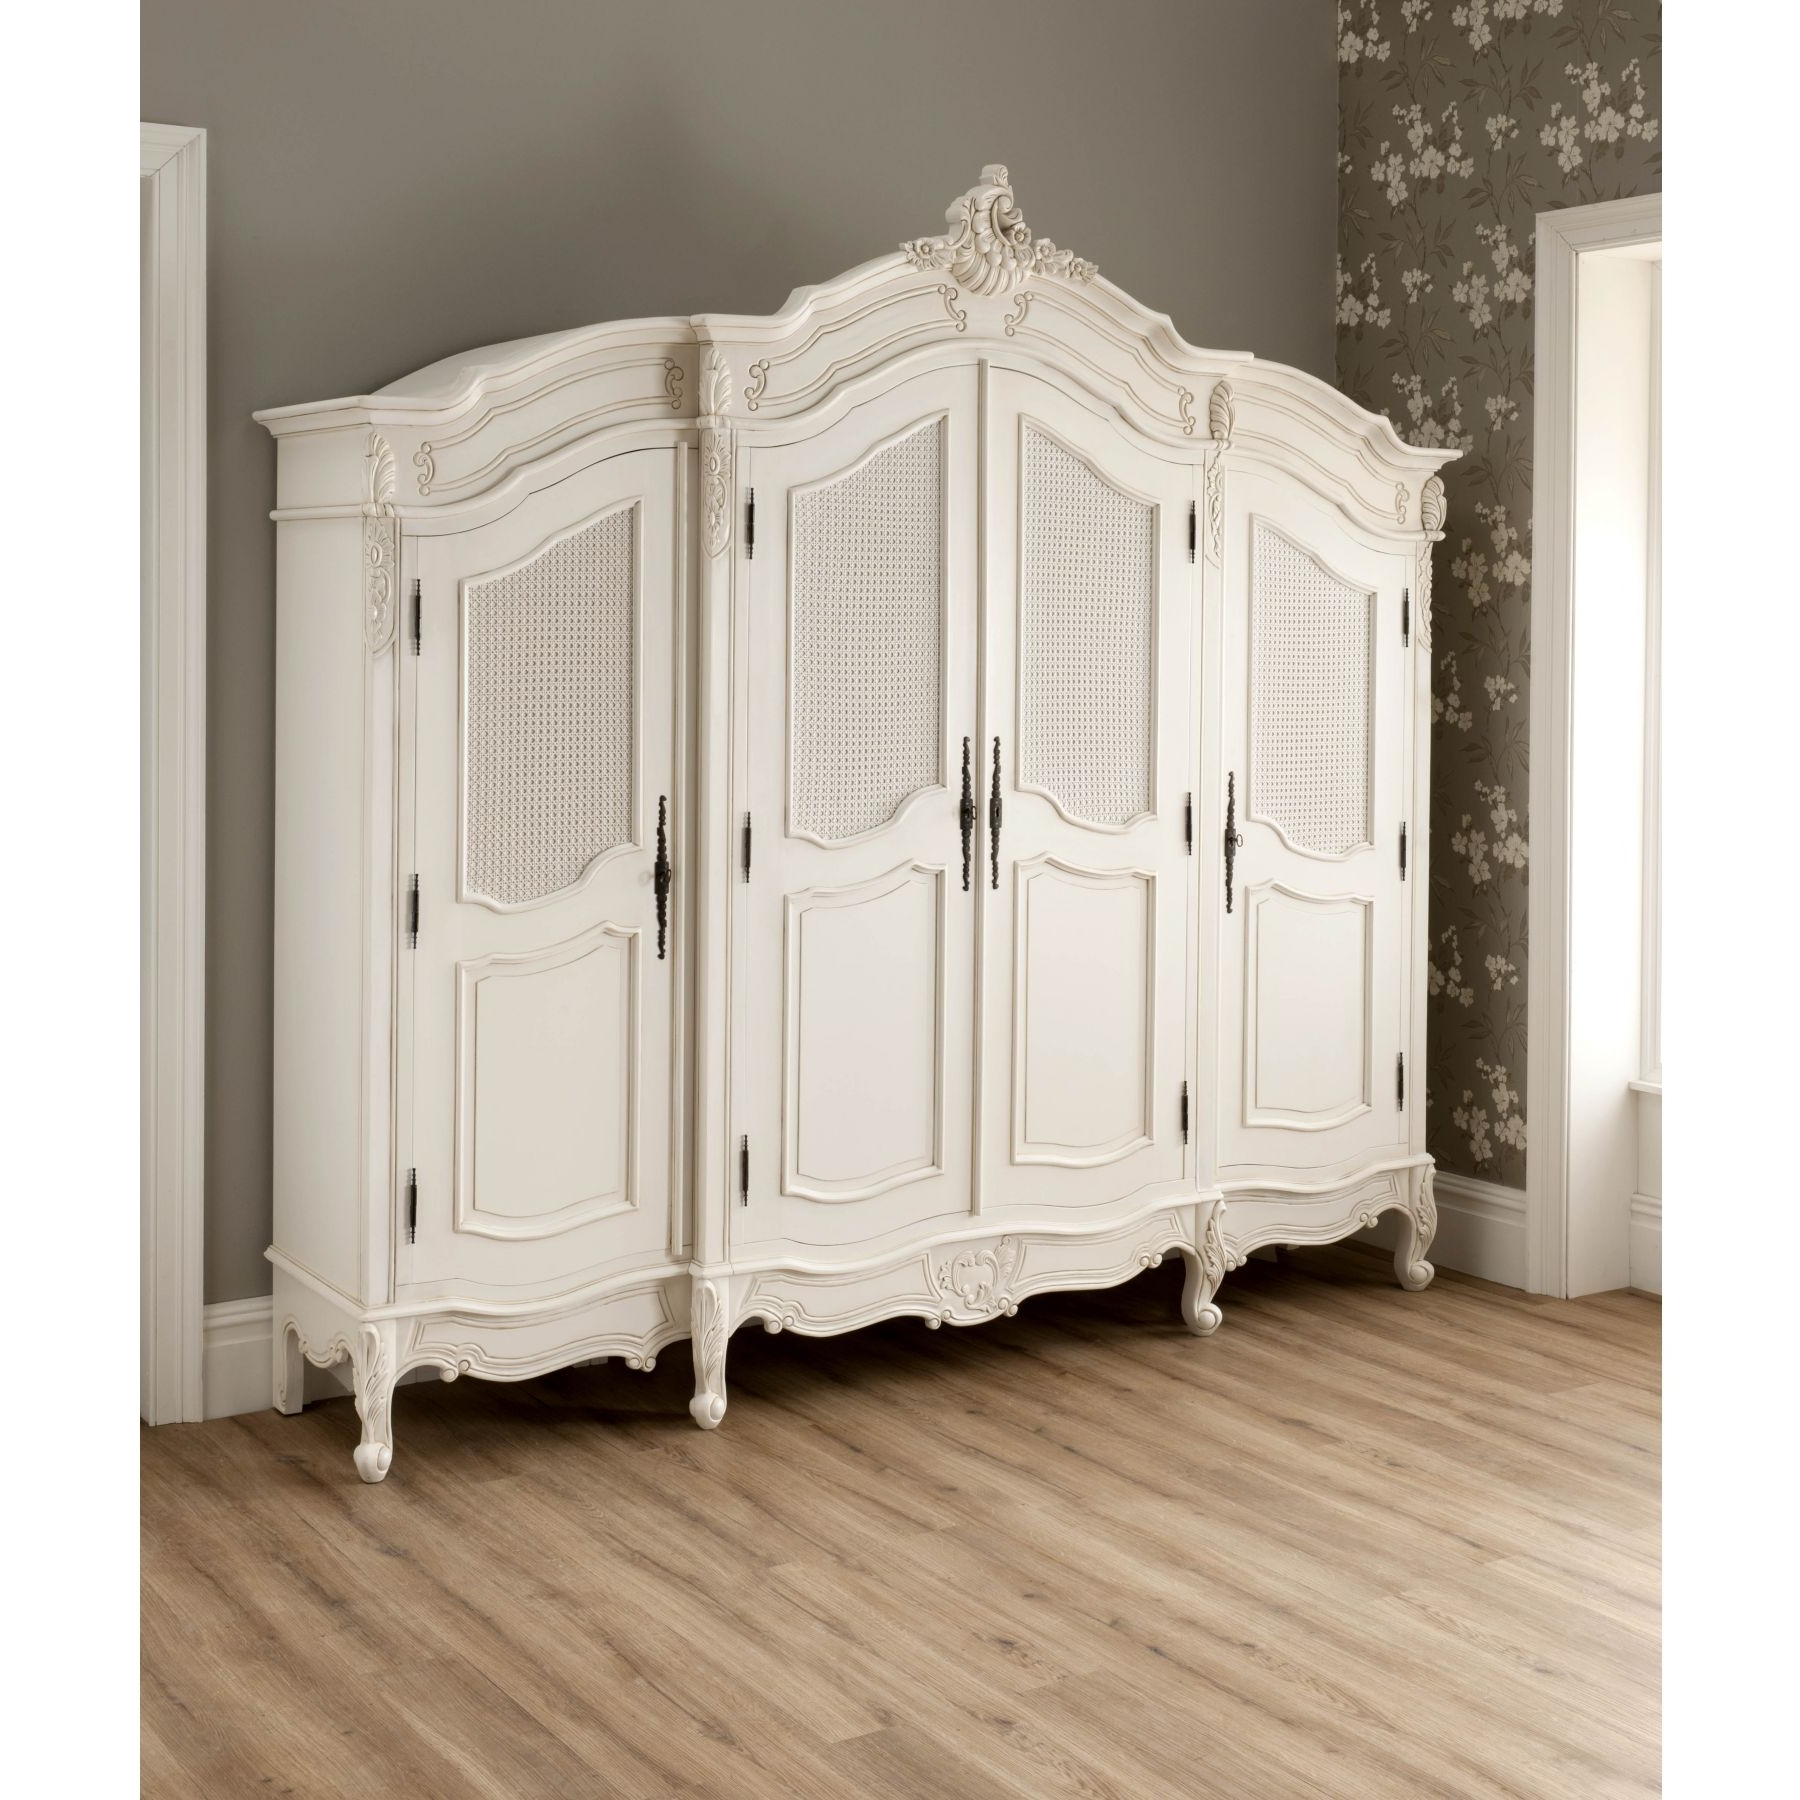 Popular French Style Fitted Wardrobes With La Rochelle Bundle Deal #3 – Bedroom From Homesdirect 365 Uk (View 12 of 15)